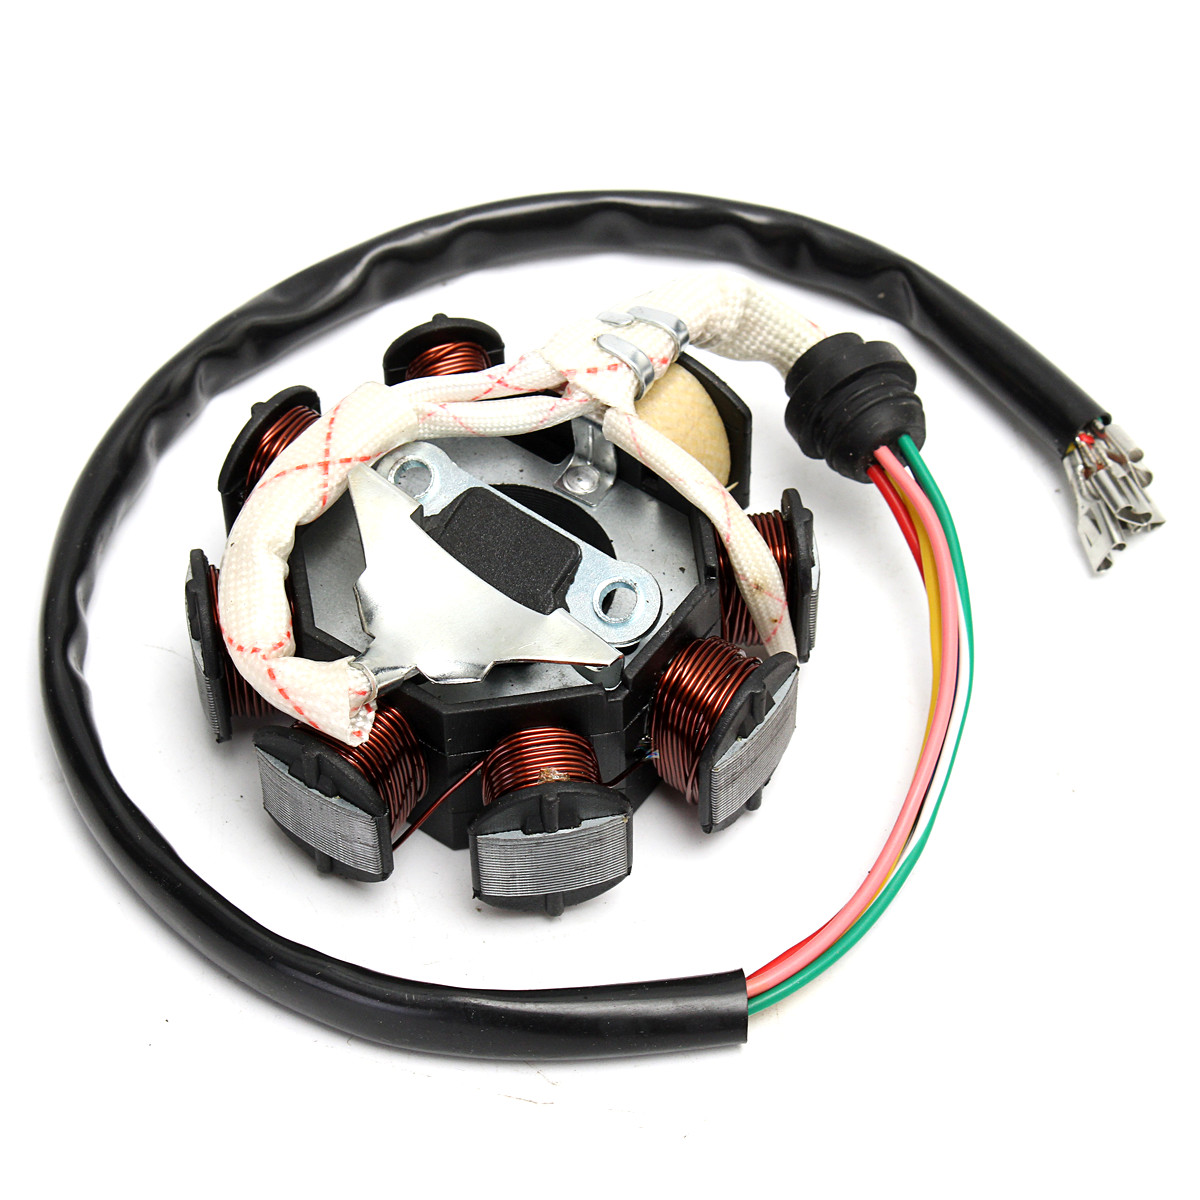 hight resolution of complete atv electrical wiring harness for chinese dirt bike atv quad 150 250 300cc